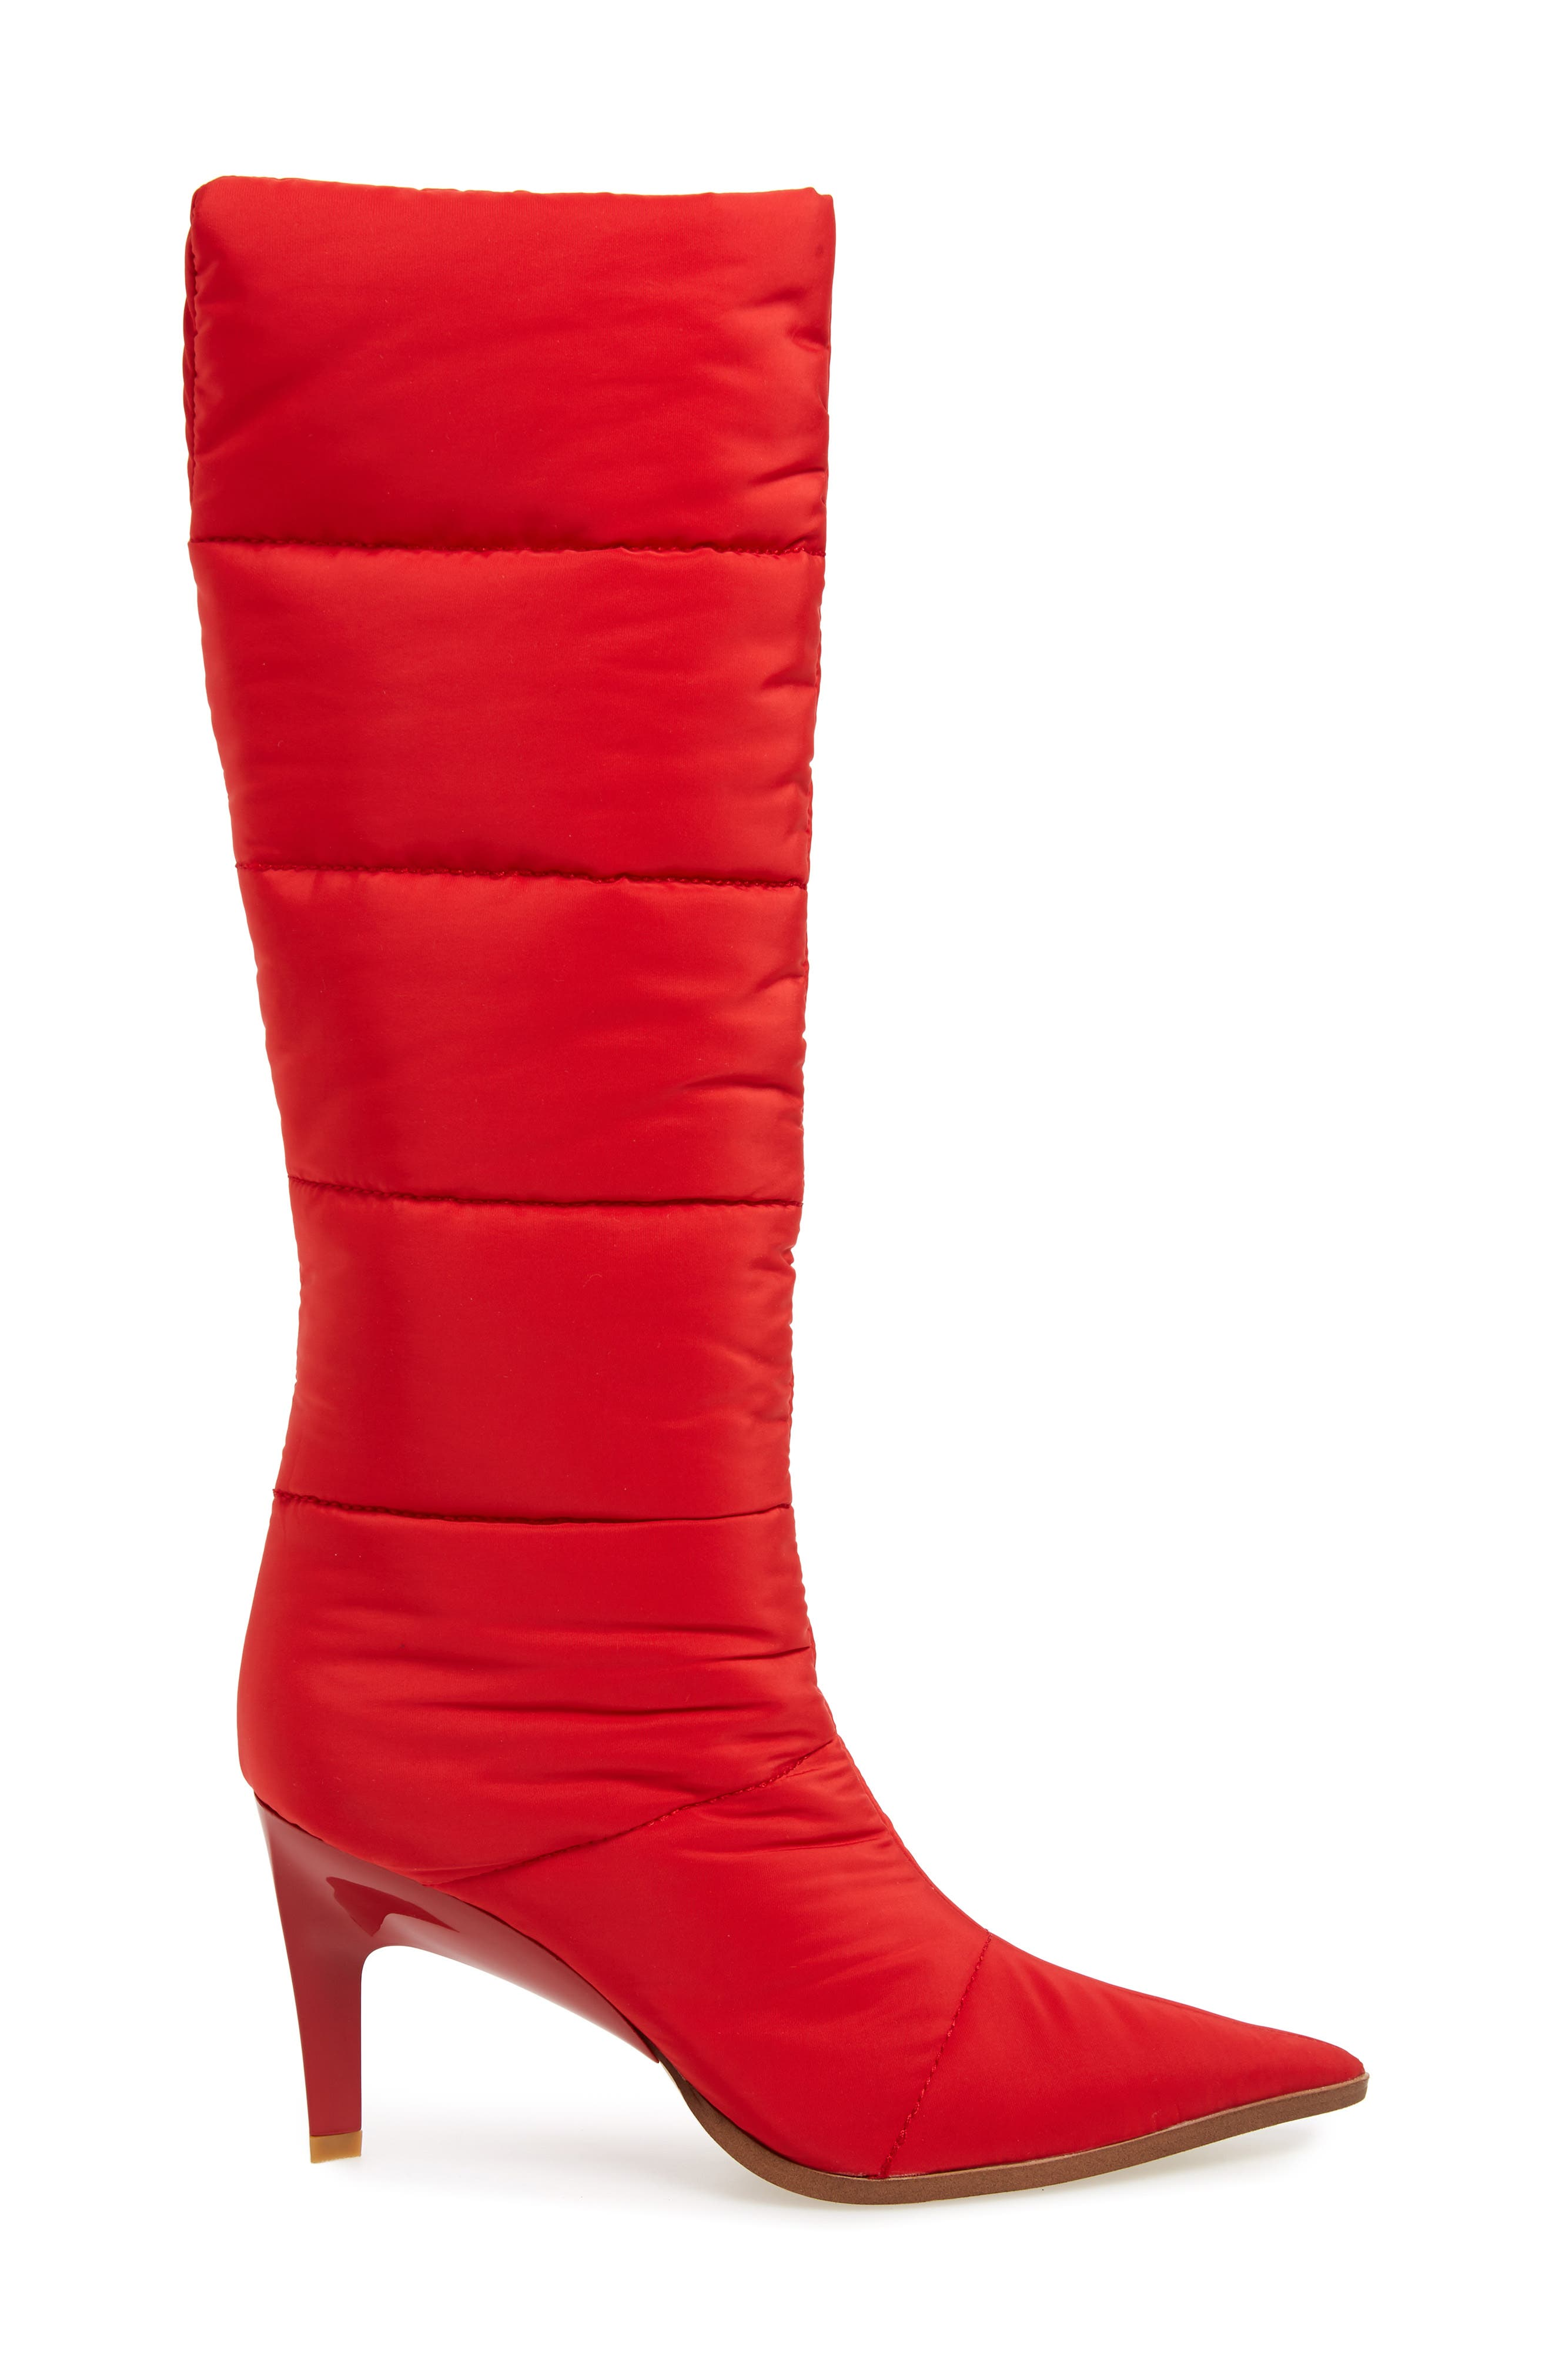 Apris Knee High Puffer Boot,                             Alternate thumbnail 3, color,                             RED FABRIC